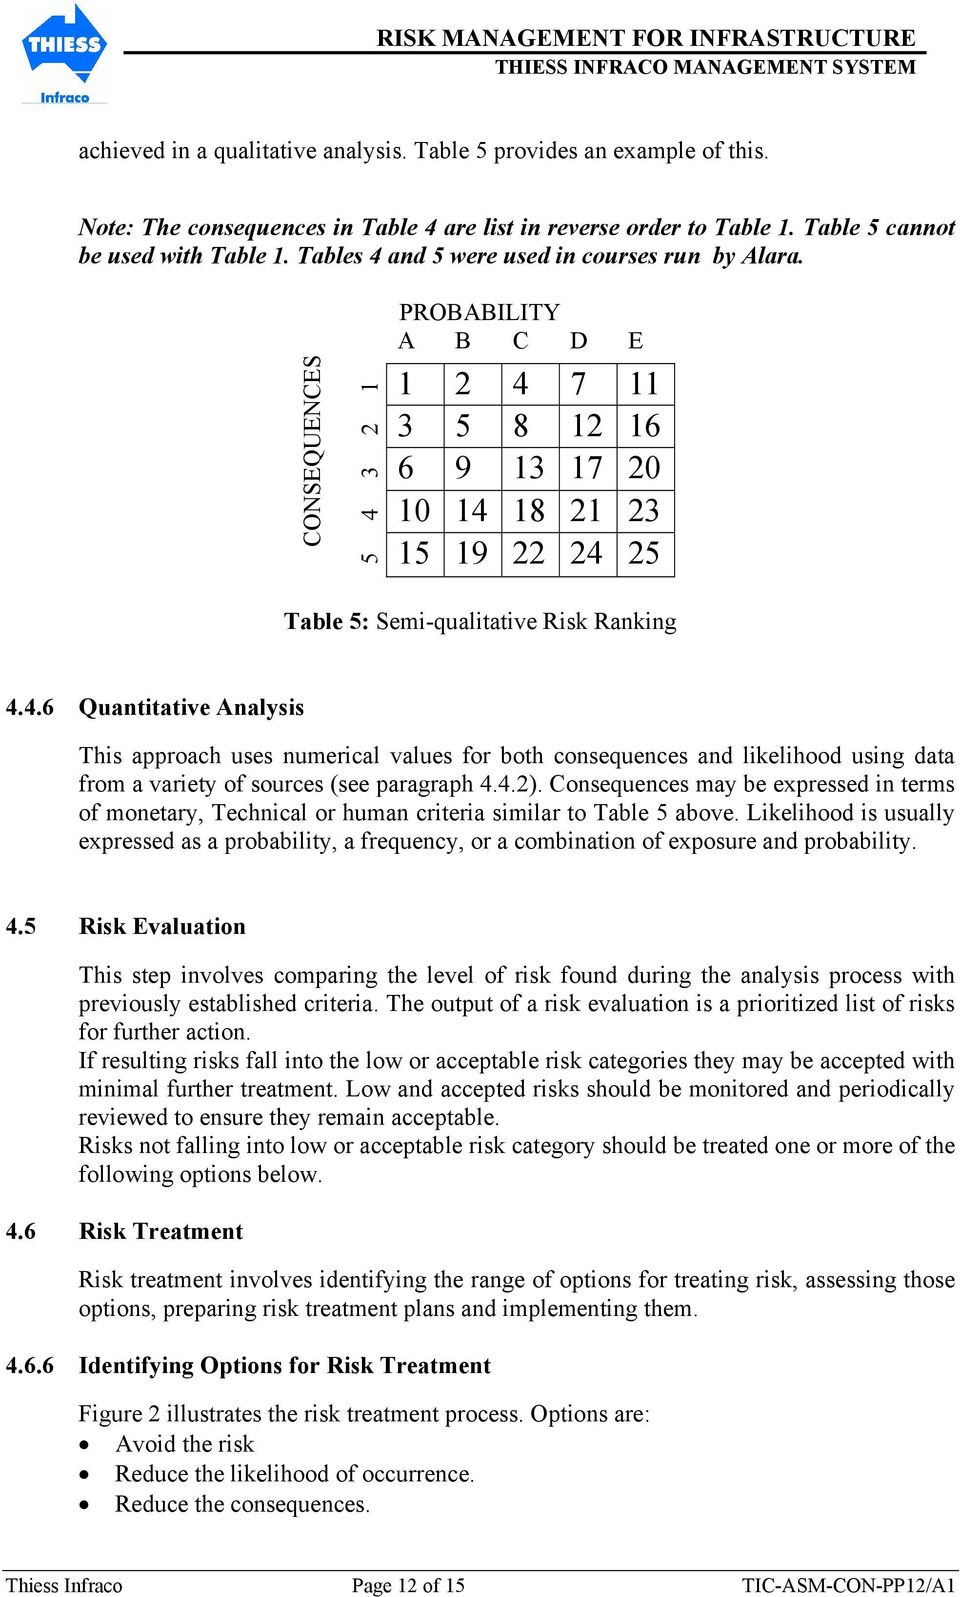 CONSEQUENCES 1 2 3 4 5 PROBABILITY A B C D E 1 2 4 7 11 3 5 8 12 16 6 9 13 17 20 10 14 18 21 23 15 19 22 24 25 Table 5: Semi-qualitative Risk Ranking 4.4.6 Quantitative Analysis This approach uses numerical values for both consequences and likelihood using data from a variety of sources (see paragraph 4.